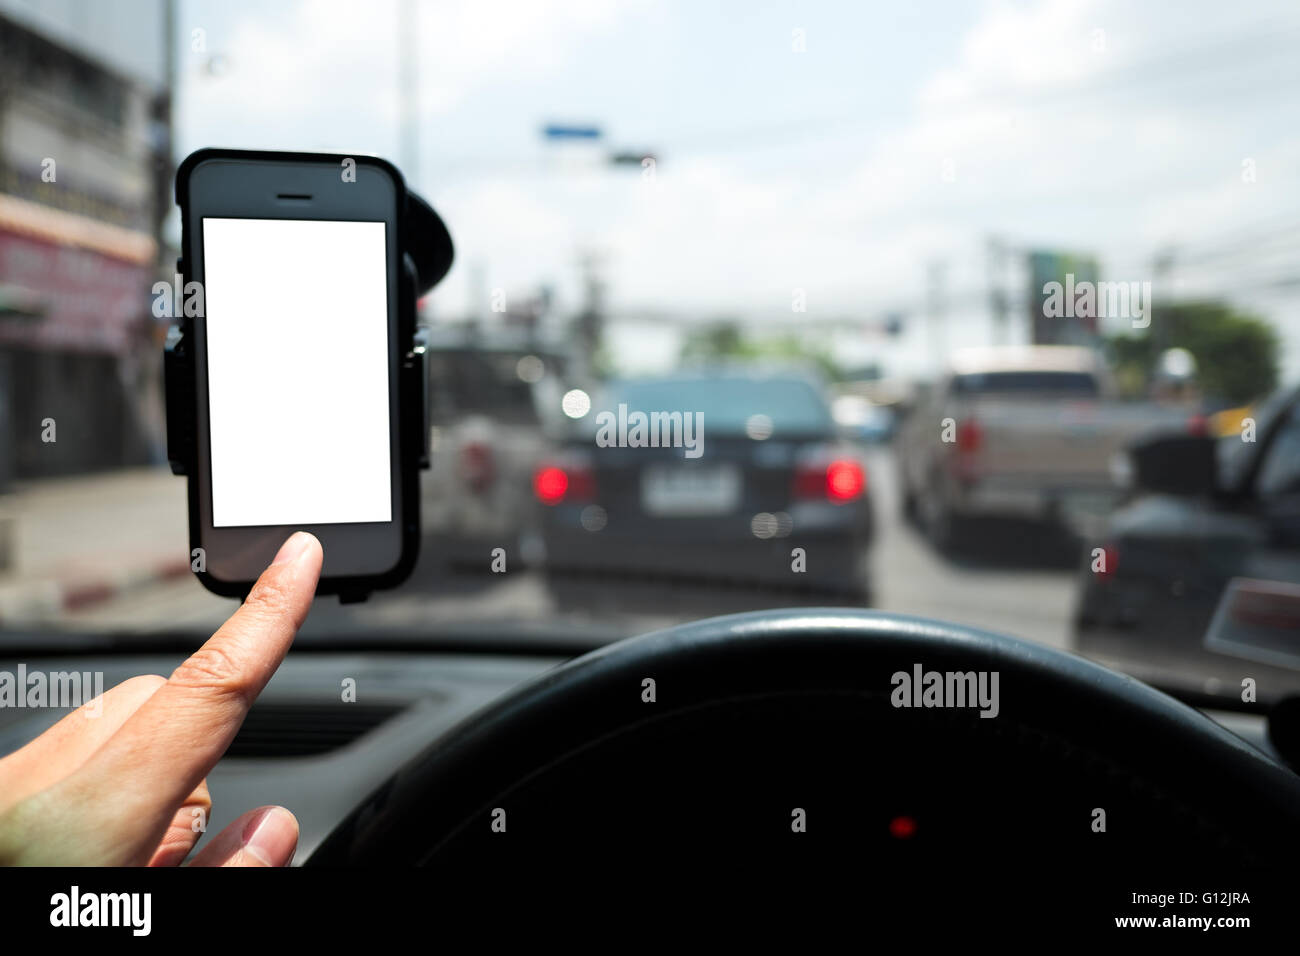 hand and smartphone in a car  use for Navigate - Stock Image